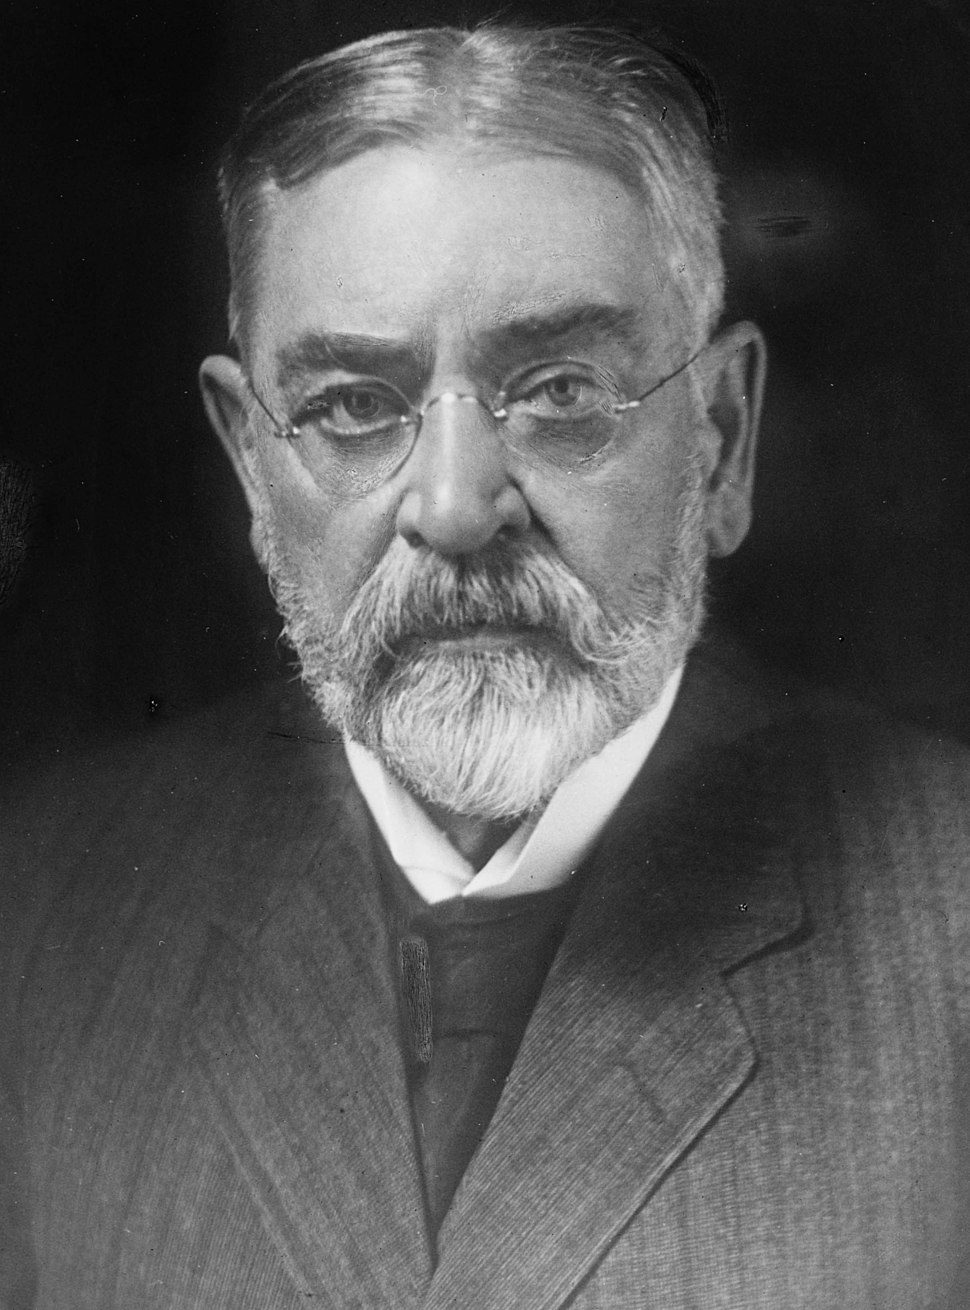 Robert Todd Lincoln - Harris and Ewing